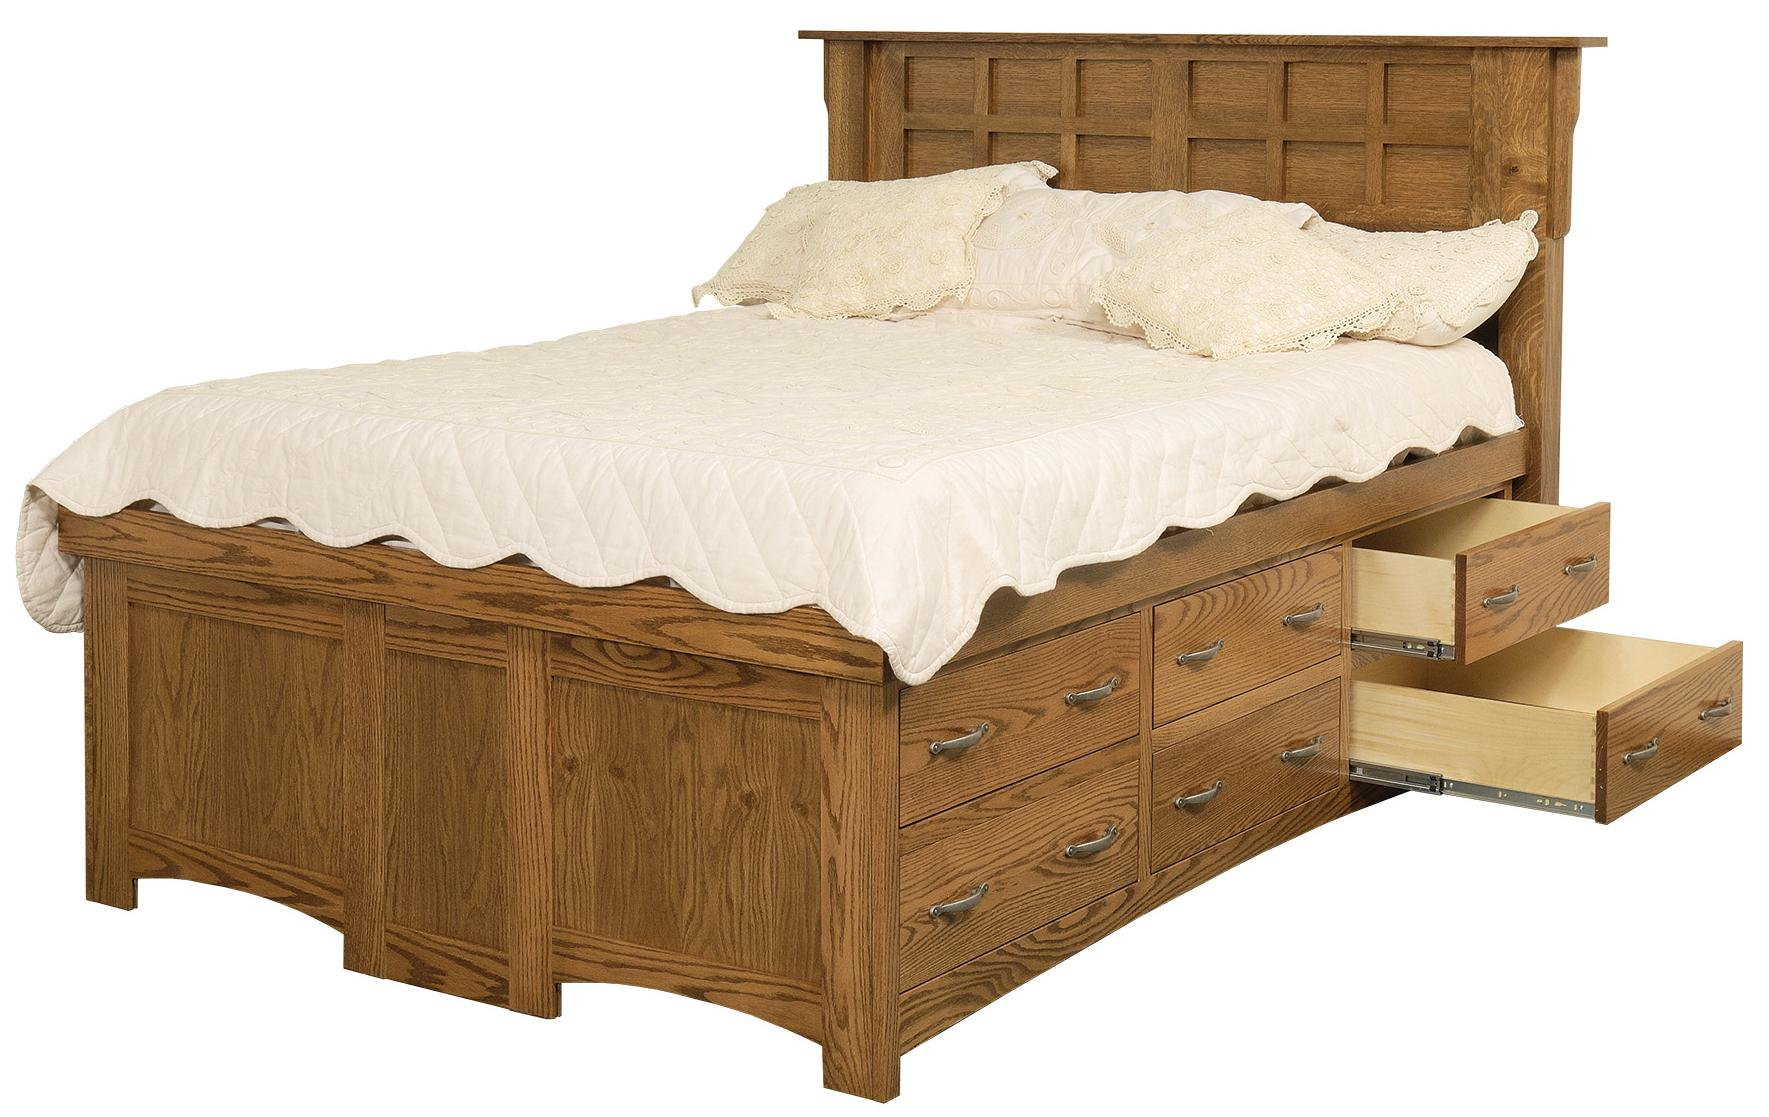 King Solid Wood Pedestal Bed With 12 Drawers